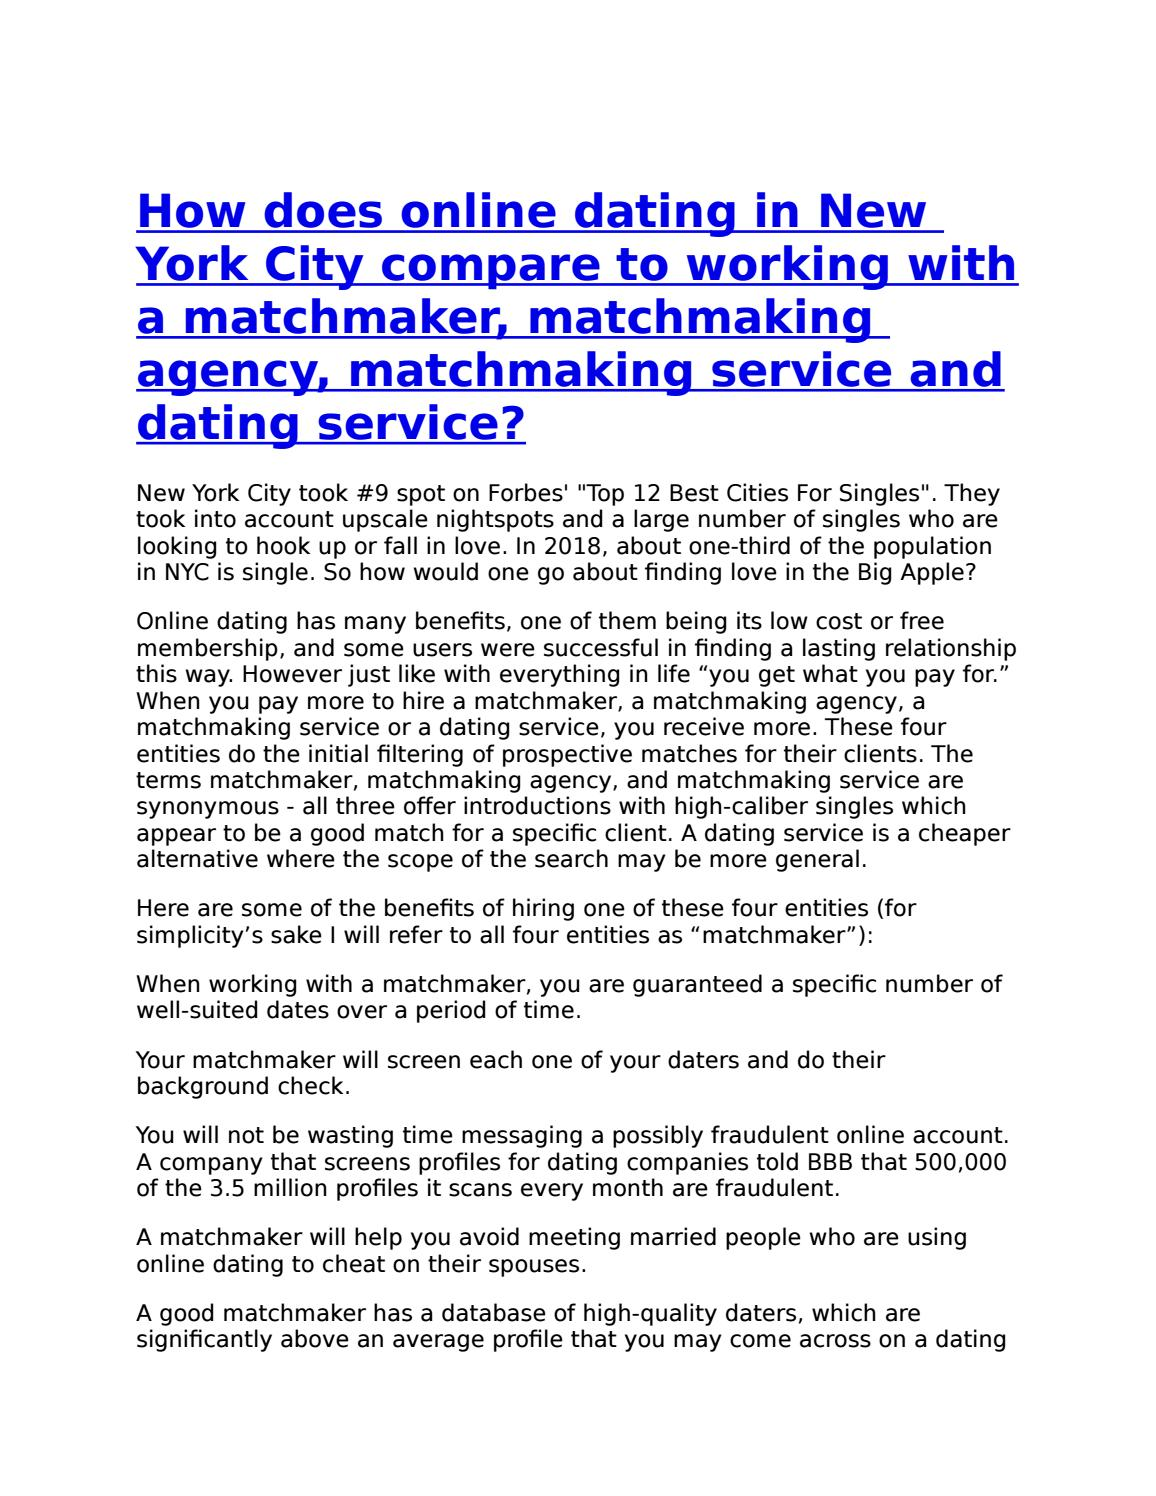 for that online dating scams match.com matchups matching very pity